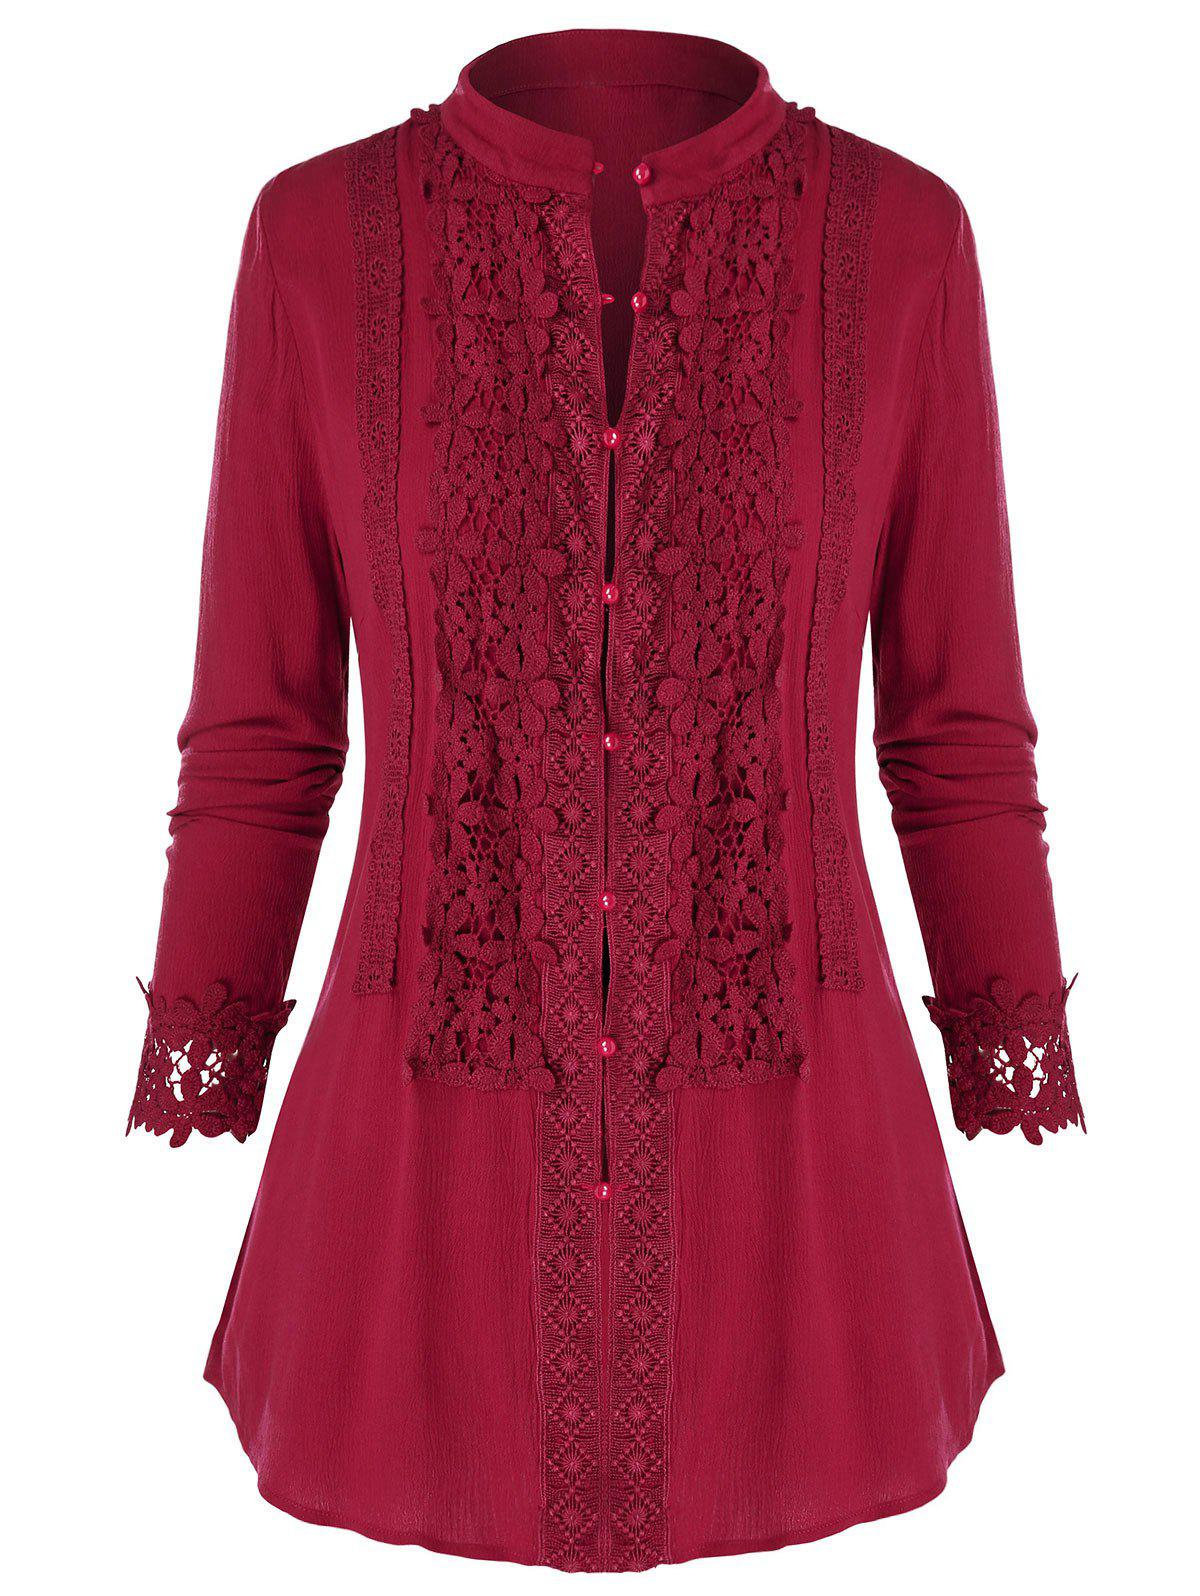 Plus Size Lace Insert Buttons Blouse - CHERRY RED L